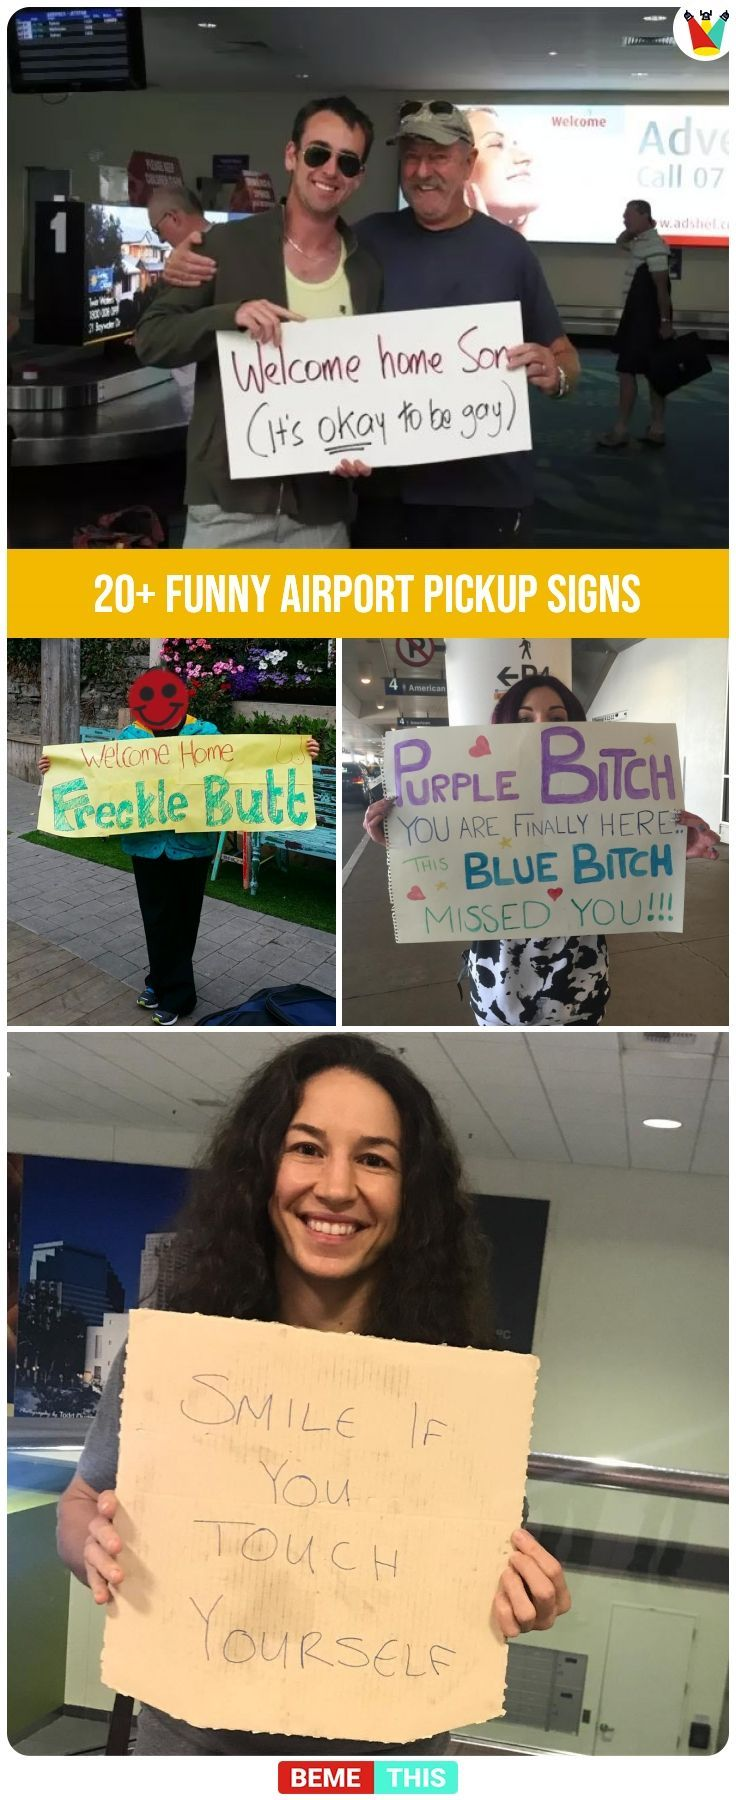 20 Embarrassing Yet Funny Airport Greeting Signs That Are Unforgettable Funnysigns Funnyairportphotos Funny Airport Funny Welcome Home Signs Greeting Sign